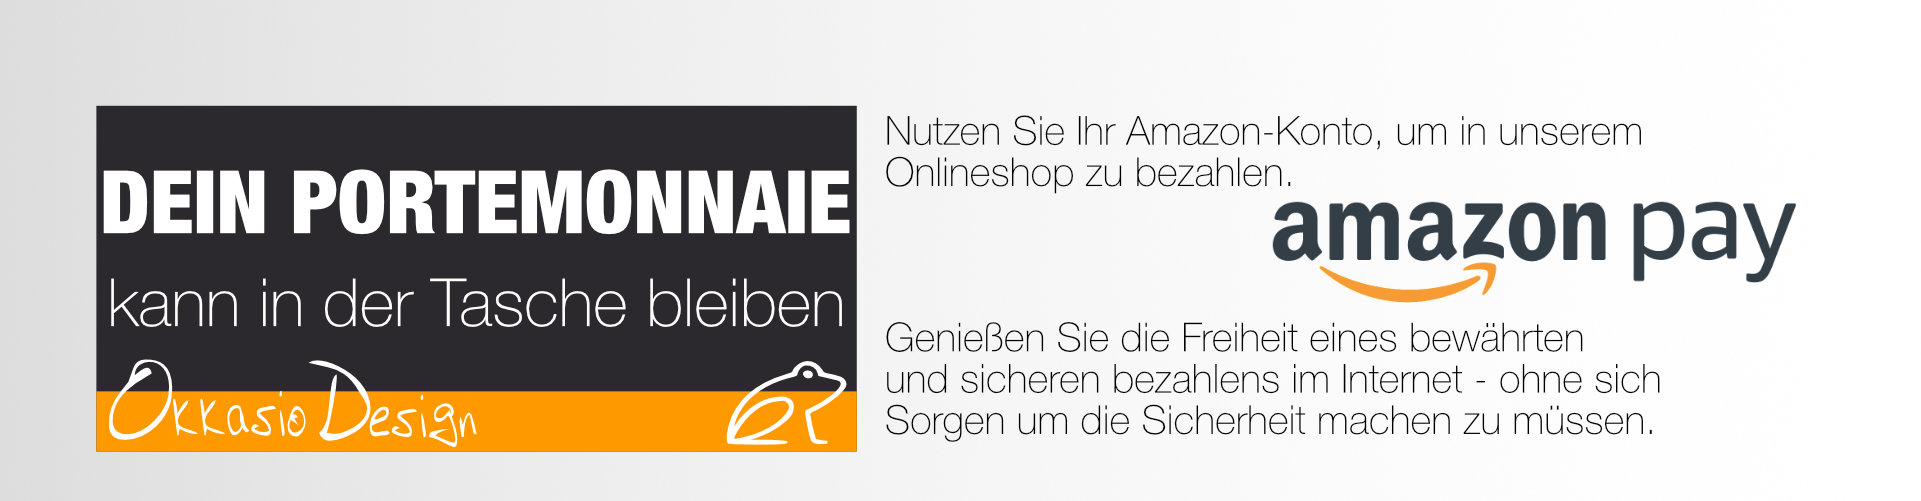 Online-Zahlungsart Amazon Pay